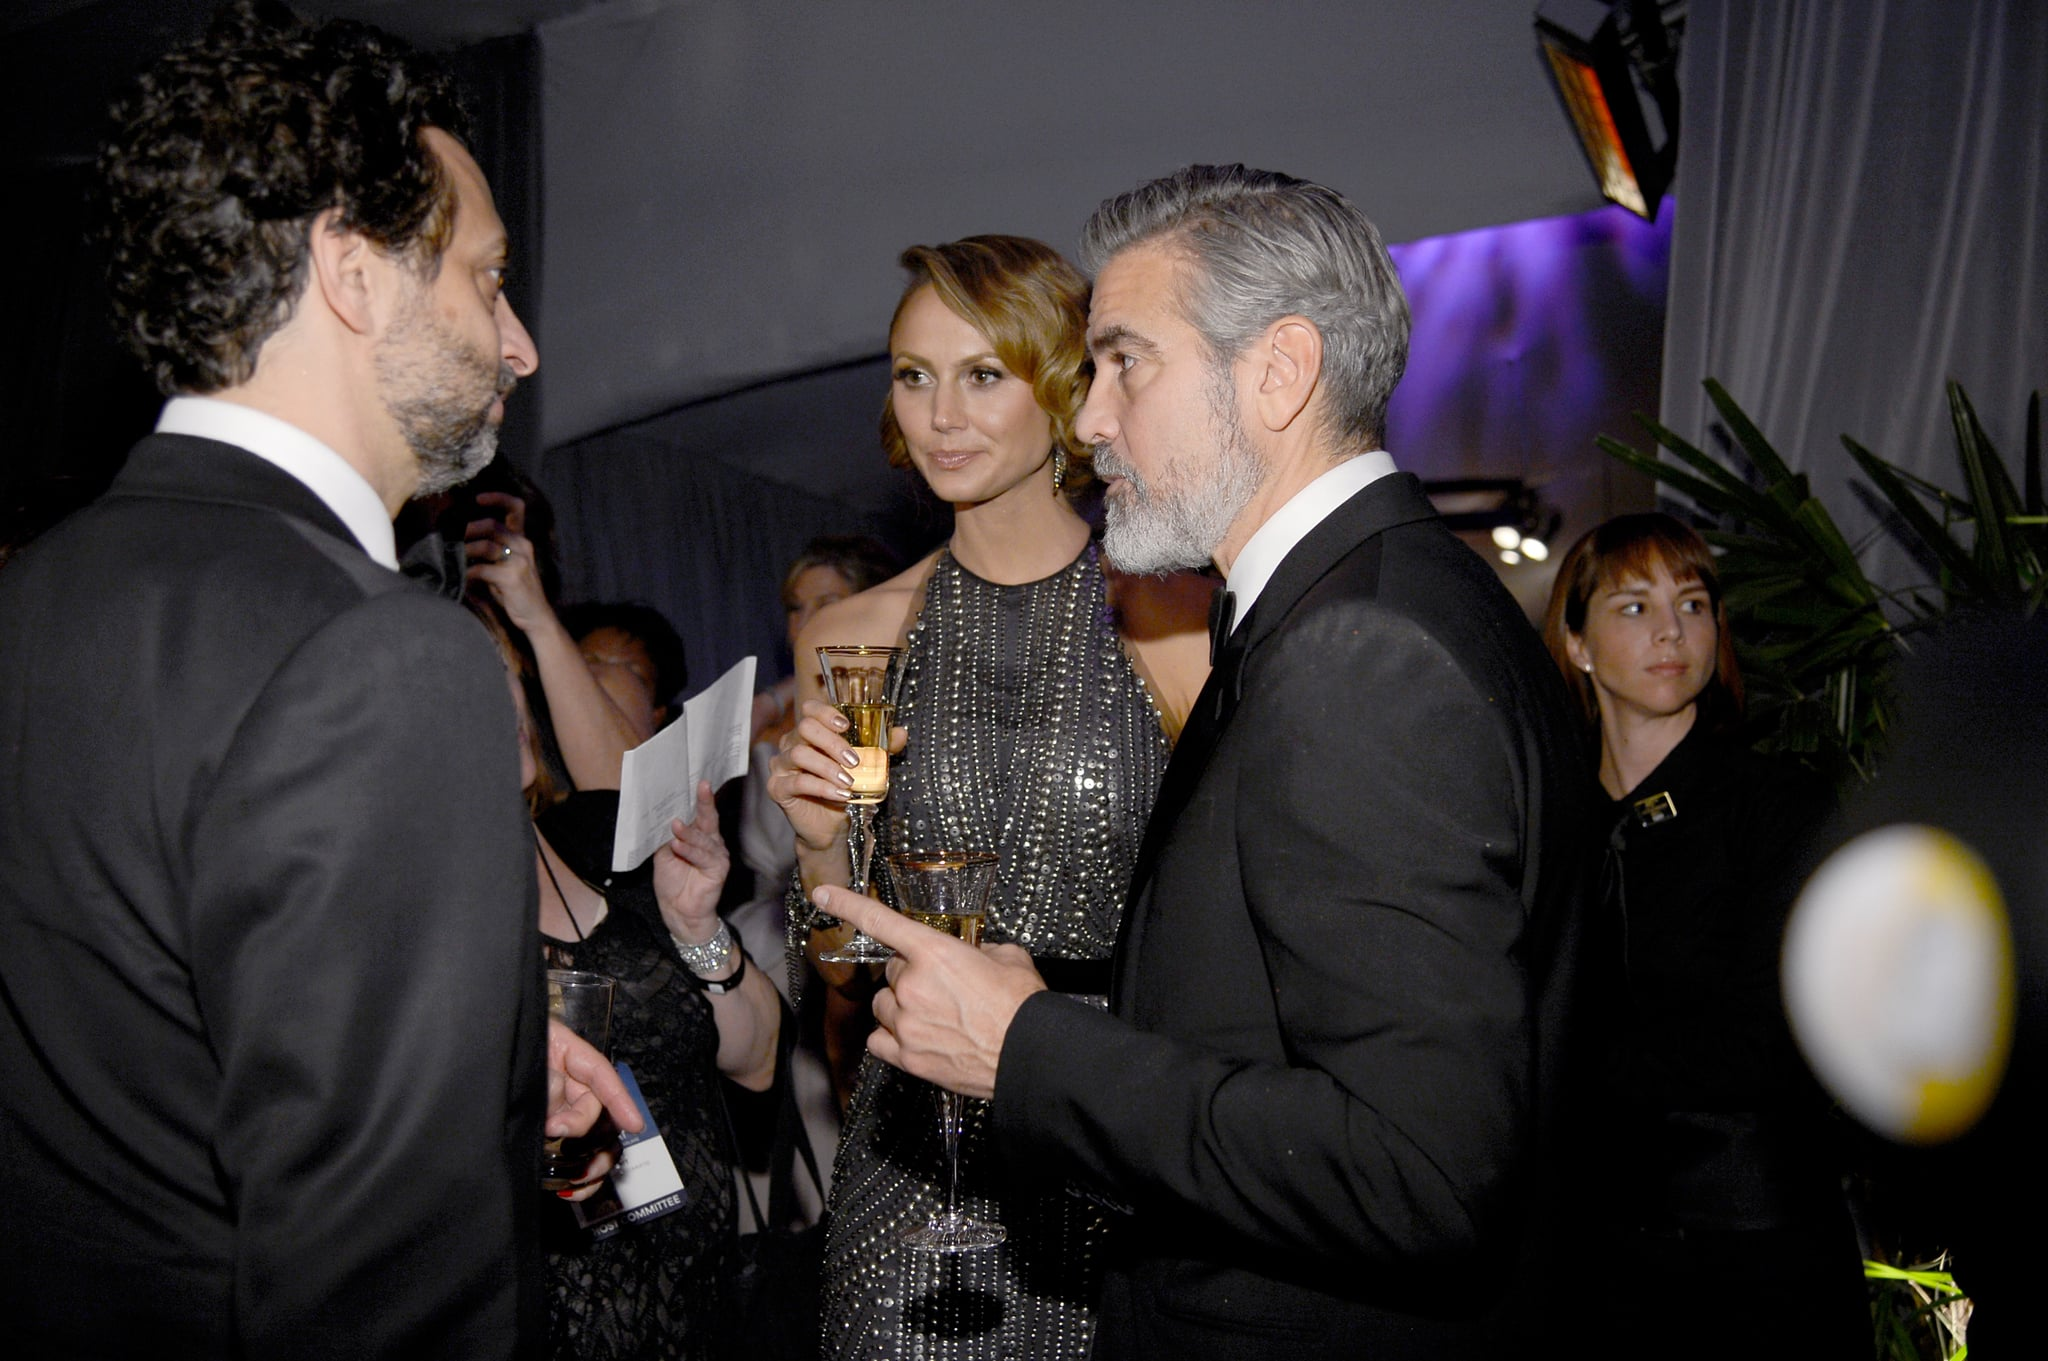 George Clooney and Stacy Keibler toasted with Champange at the Governors Ball after the Oscars.